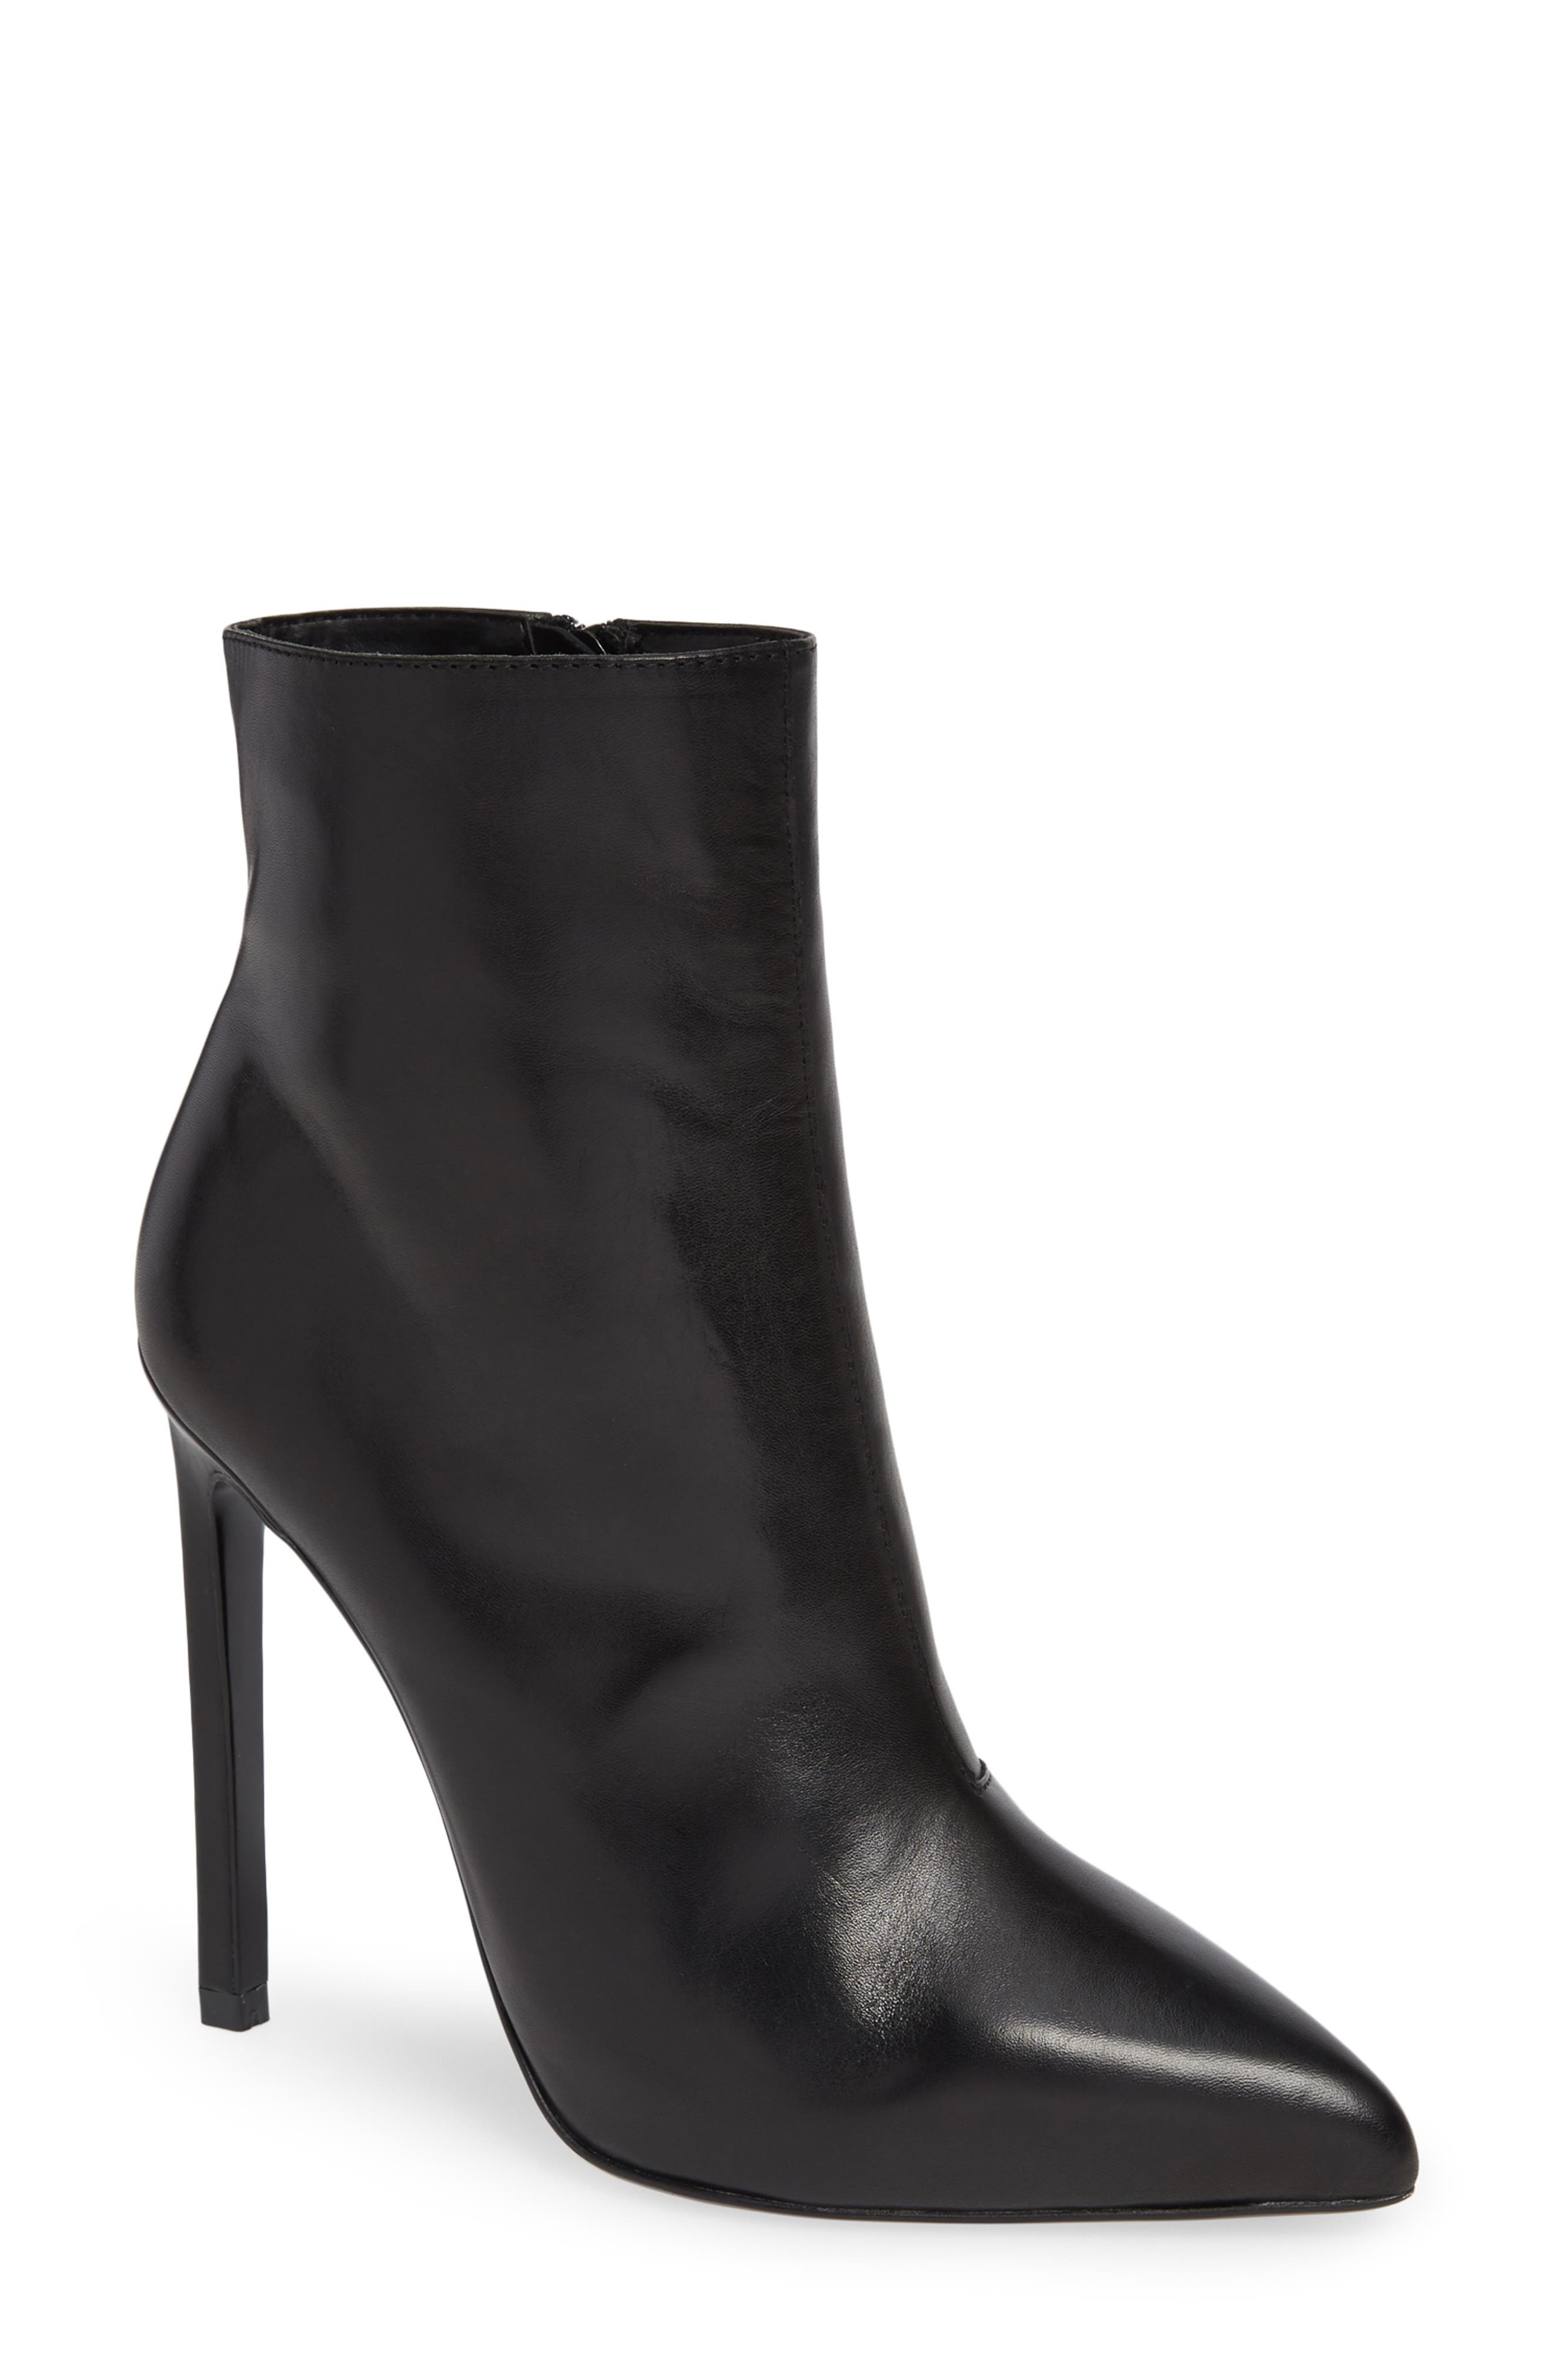 TONY BIANCO Freddie Bootie in Black Como Leather